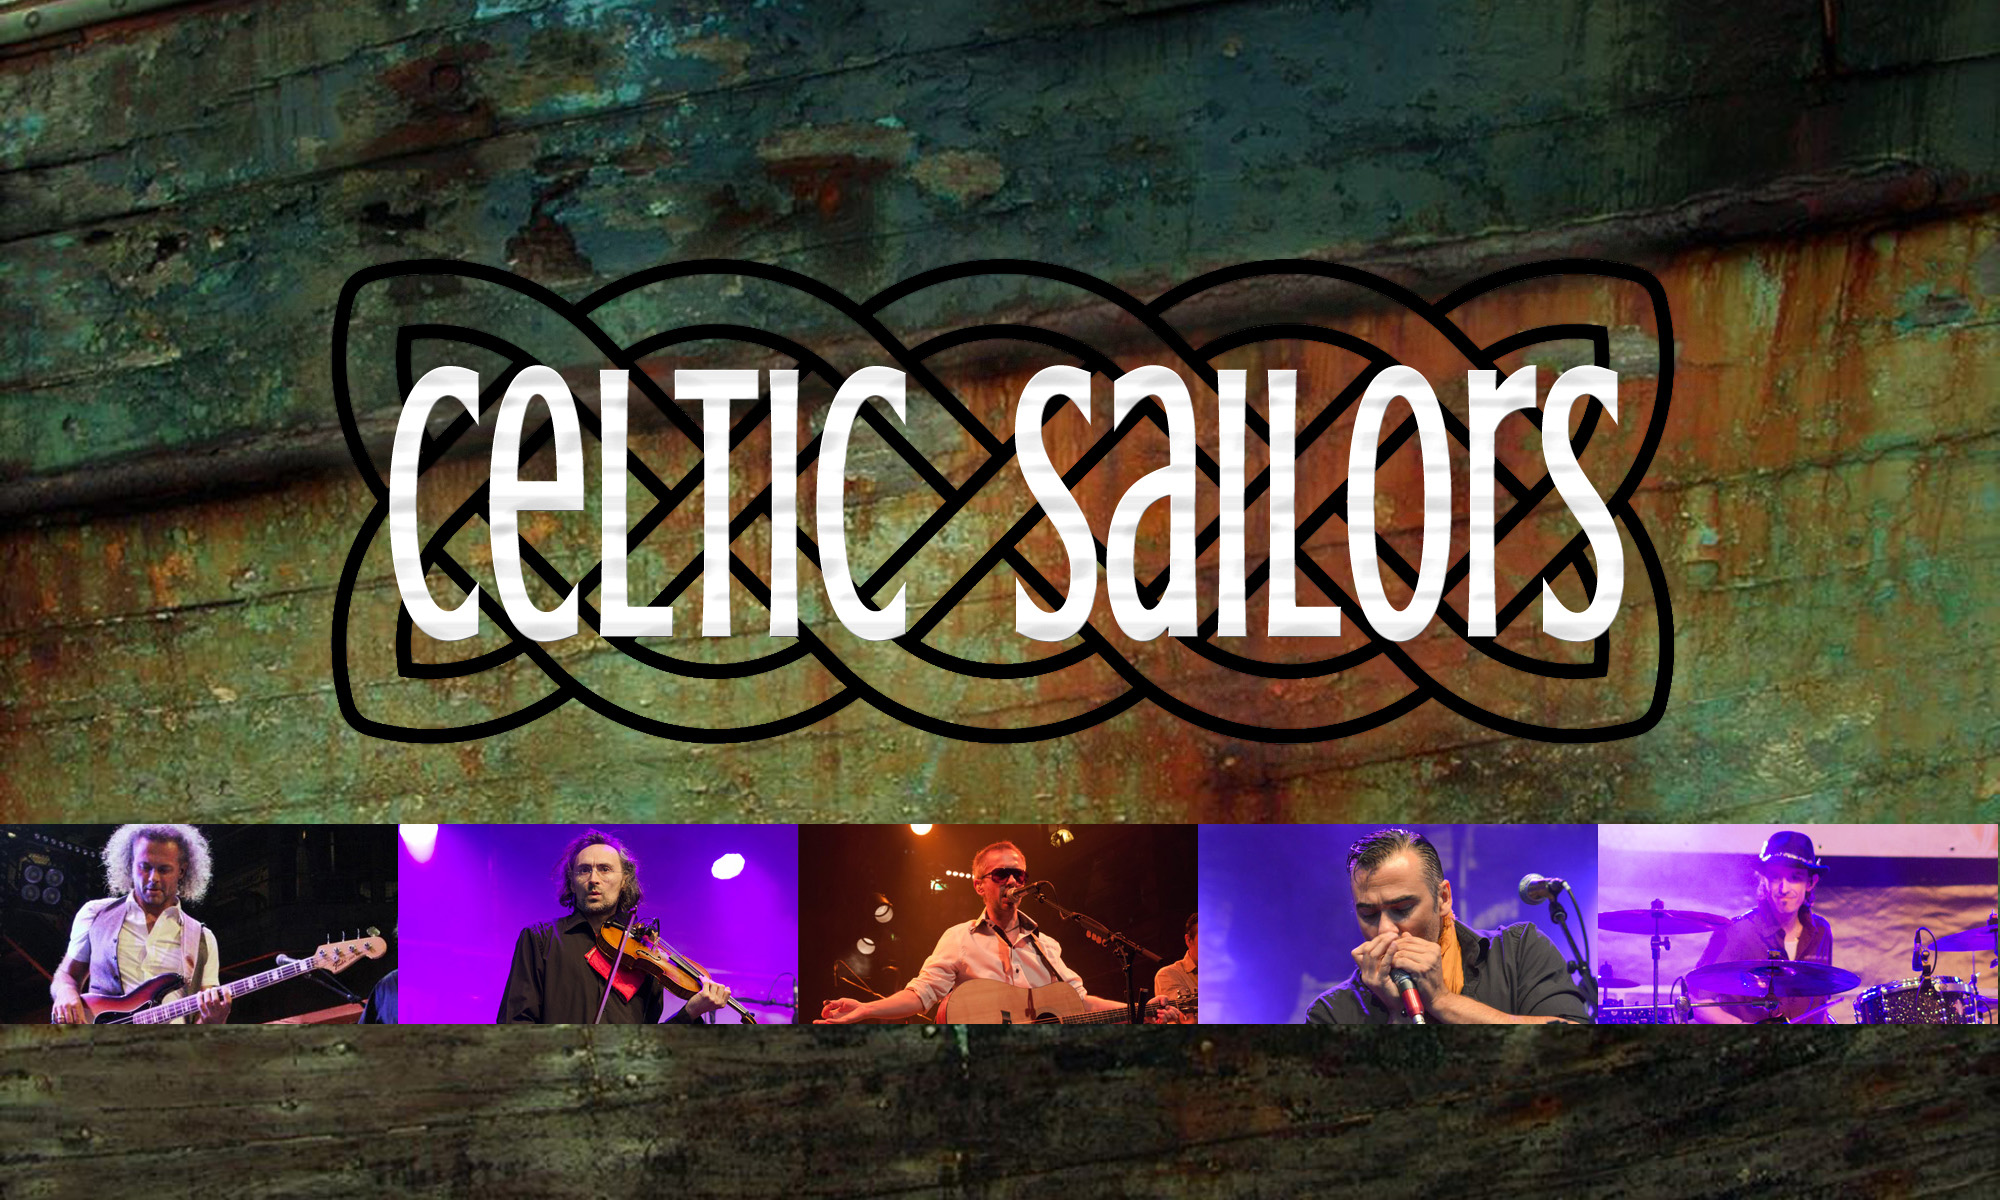 Celtic Sailors